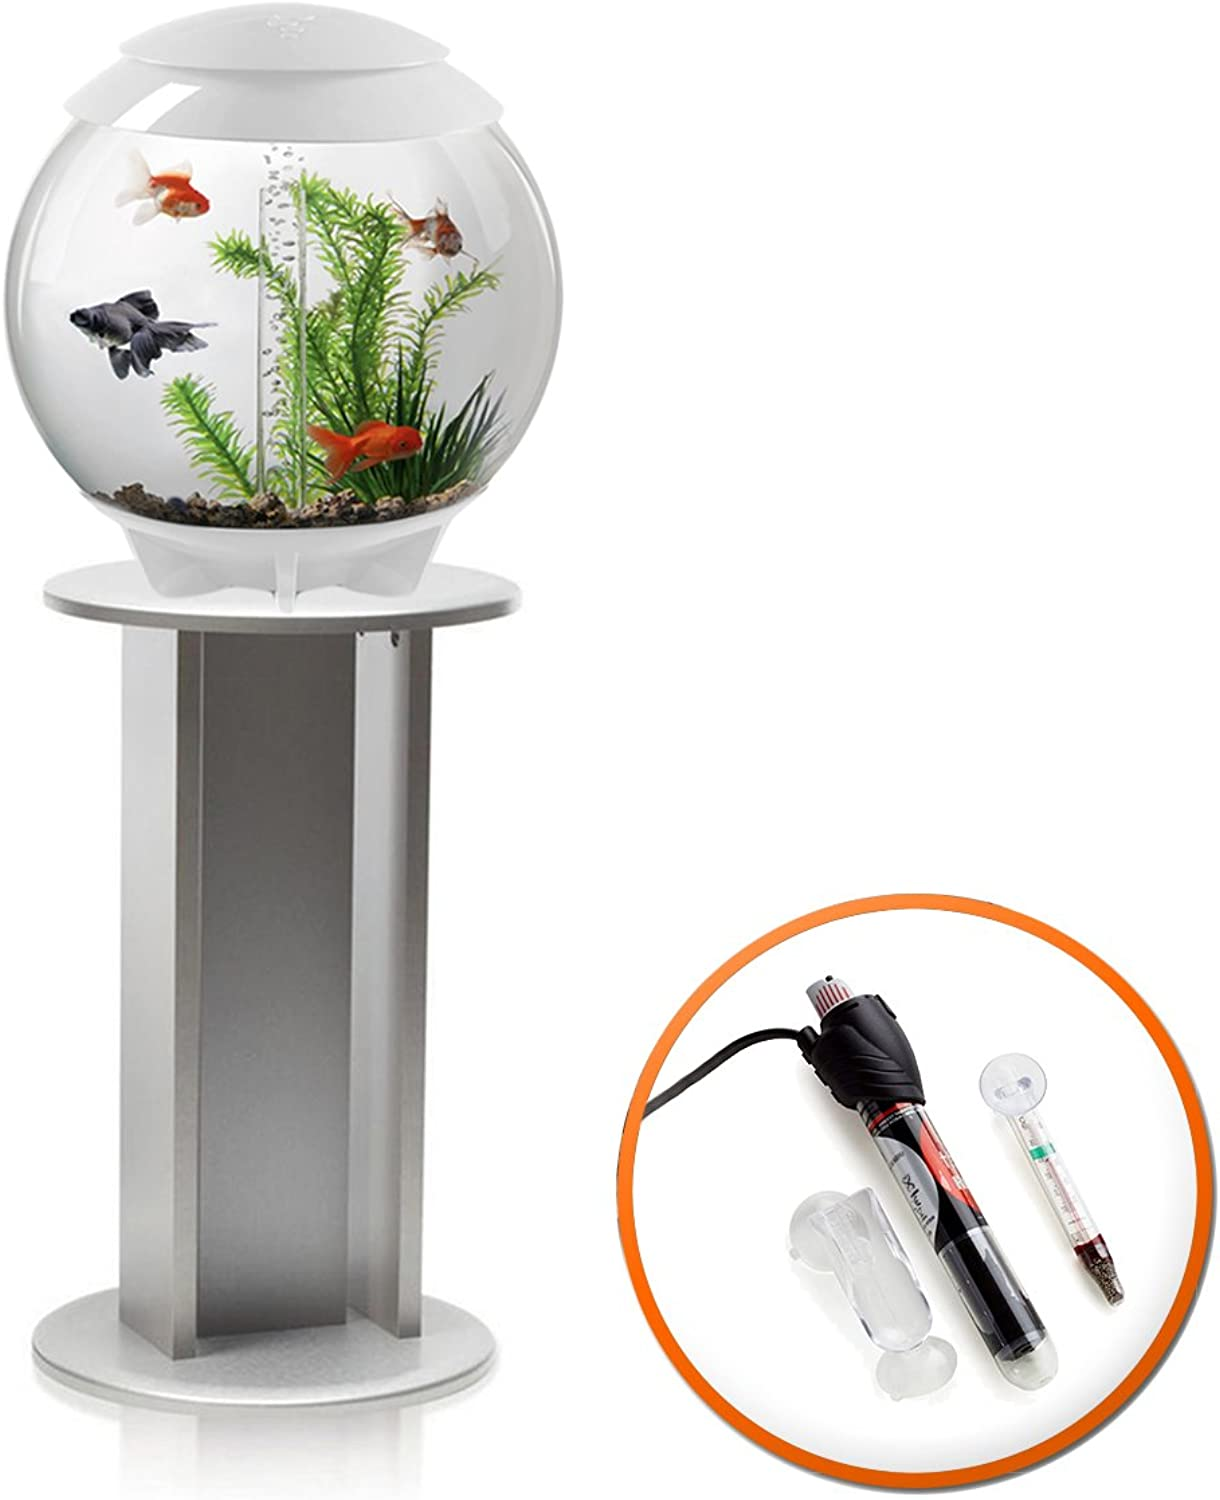 BiOrb Halo 30L Aquarium in White with Moonlight LED Lighting, Heater Pack and Silver Stand